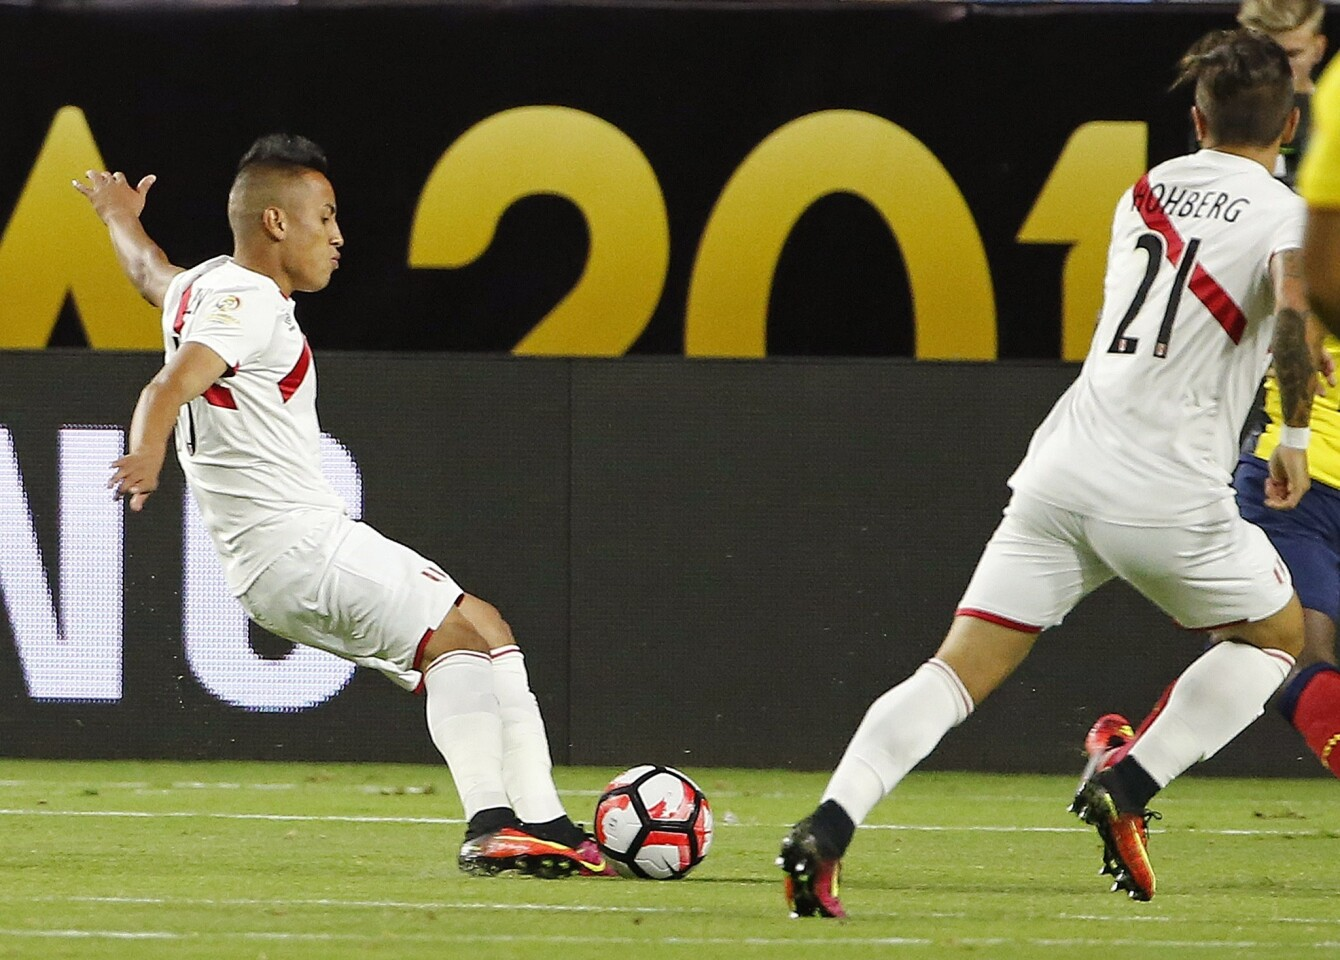 Peru's Christian Cueva, left, kicks the ball for a goal as teammate Alejandro Hohberg (21) watches during the first half of a Copa America group C soccer match against Ecuador on Wednesday, June 8, 2016, in Glendale, Ariz. (AP Photo/Ross D. Franklin)